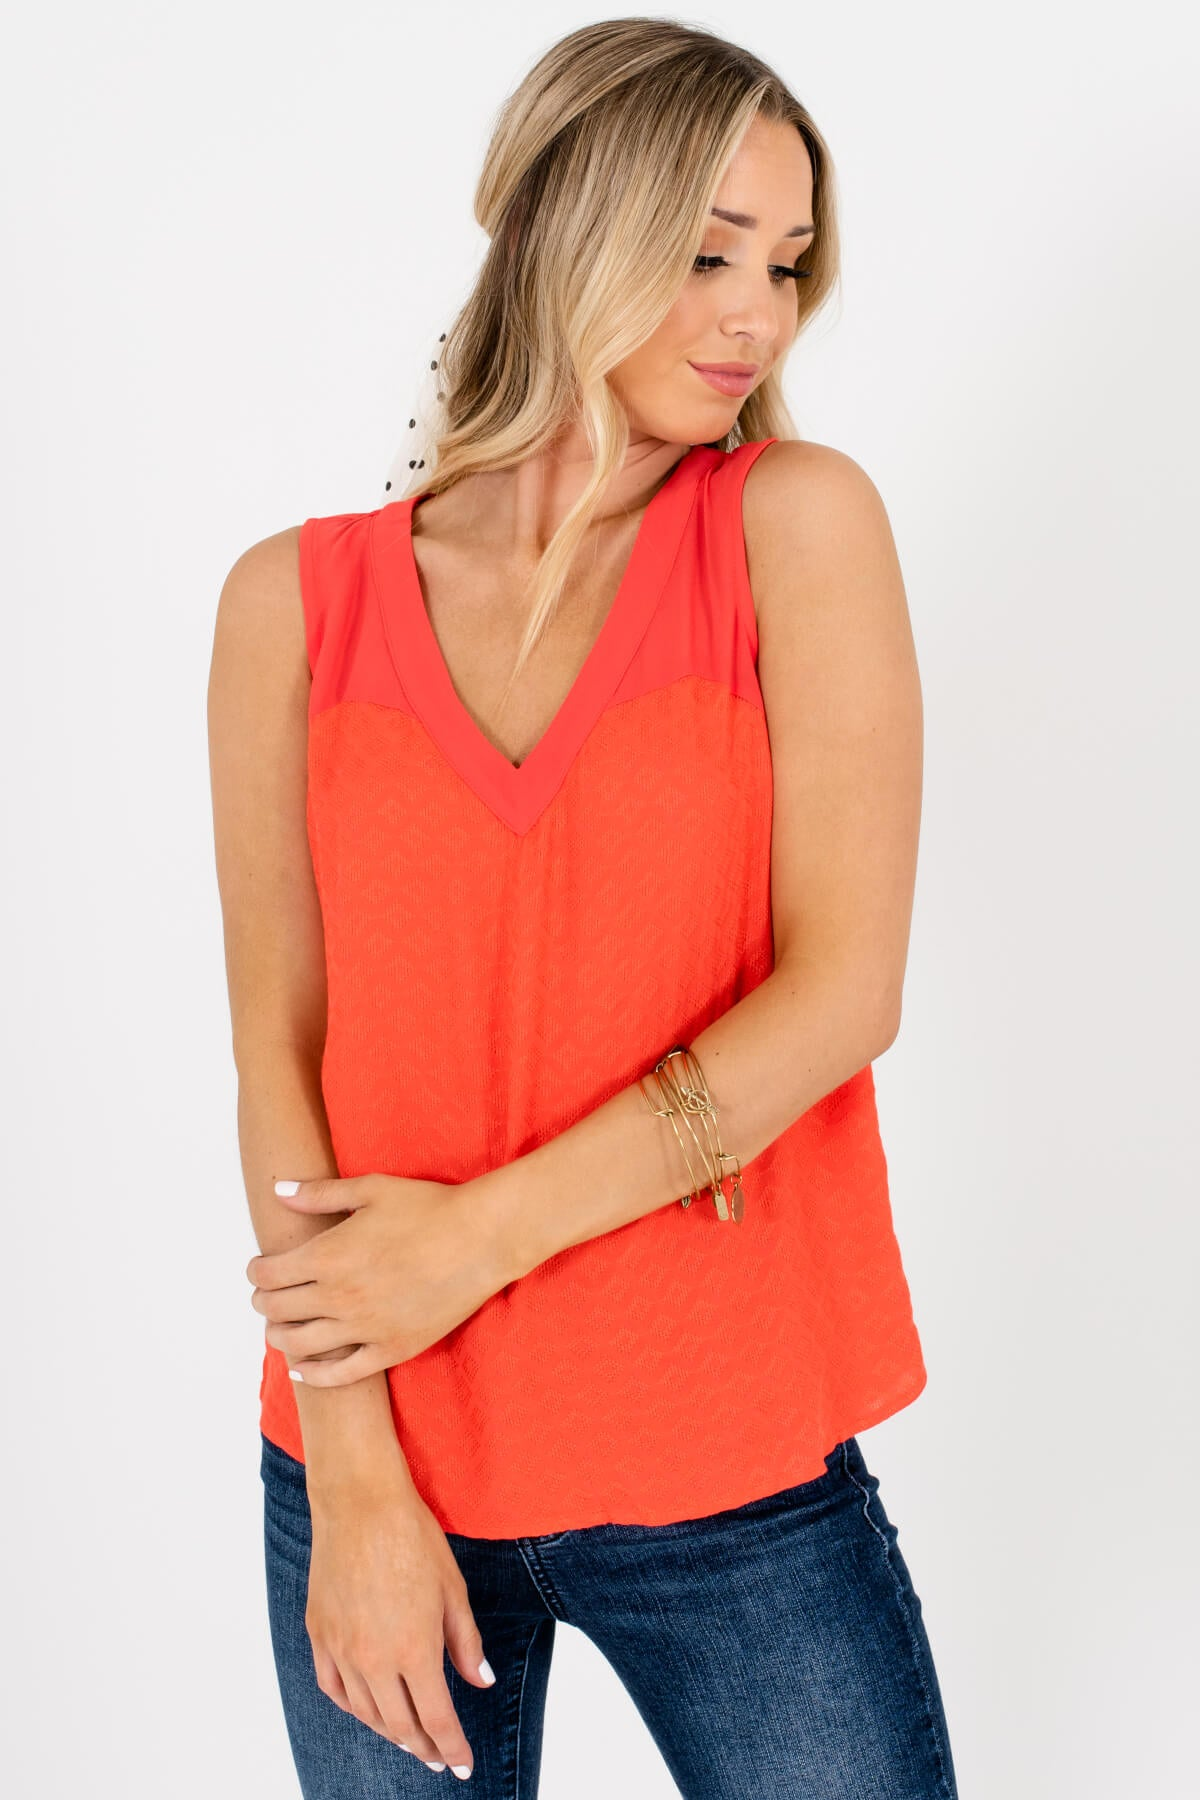 Bright Orange Textured Tank Tops Affordable Online Boutique